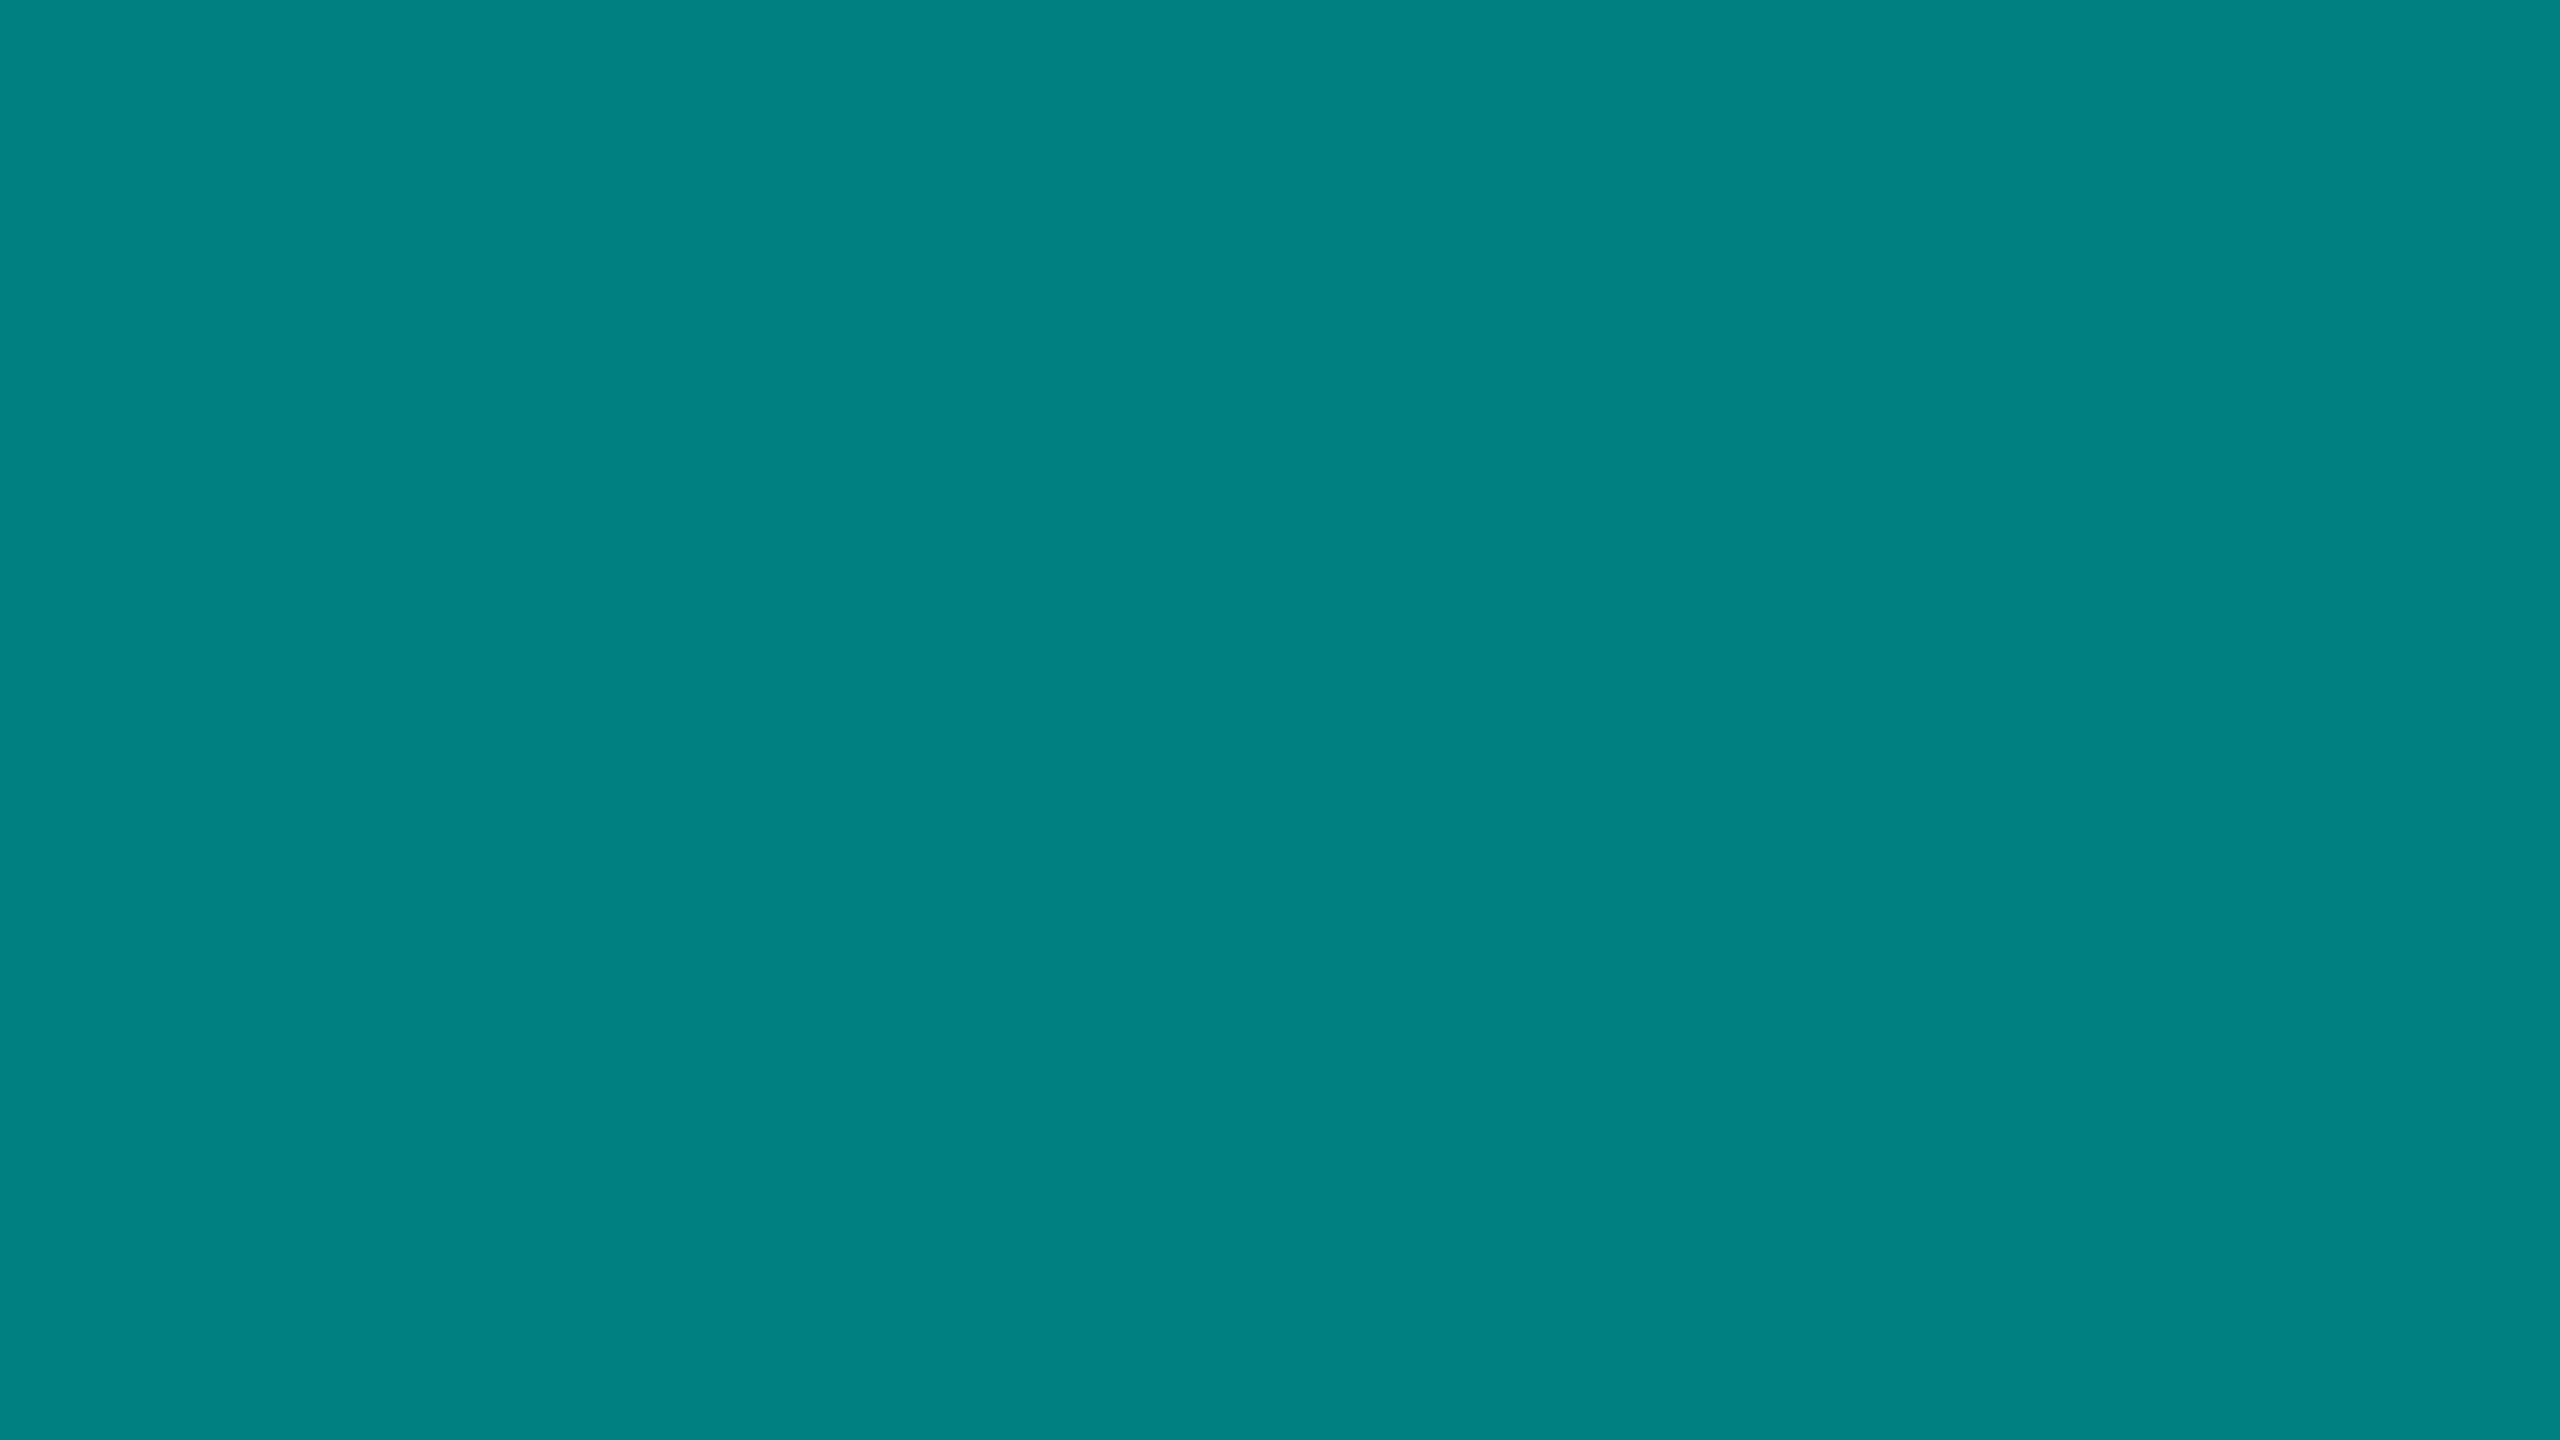 2560x1440 Floral Wallpaper — Candy Niemeyer this Teal ...